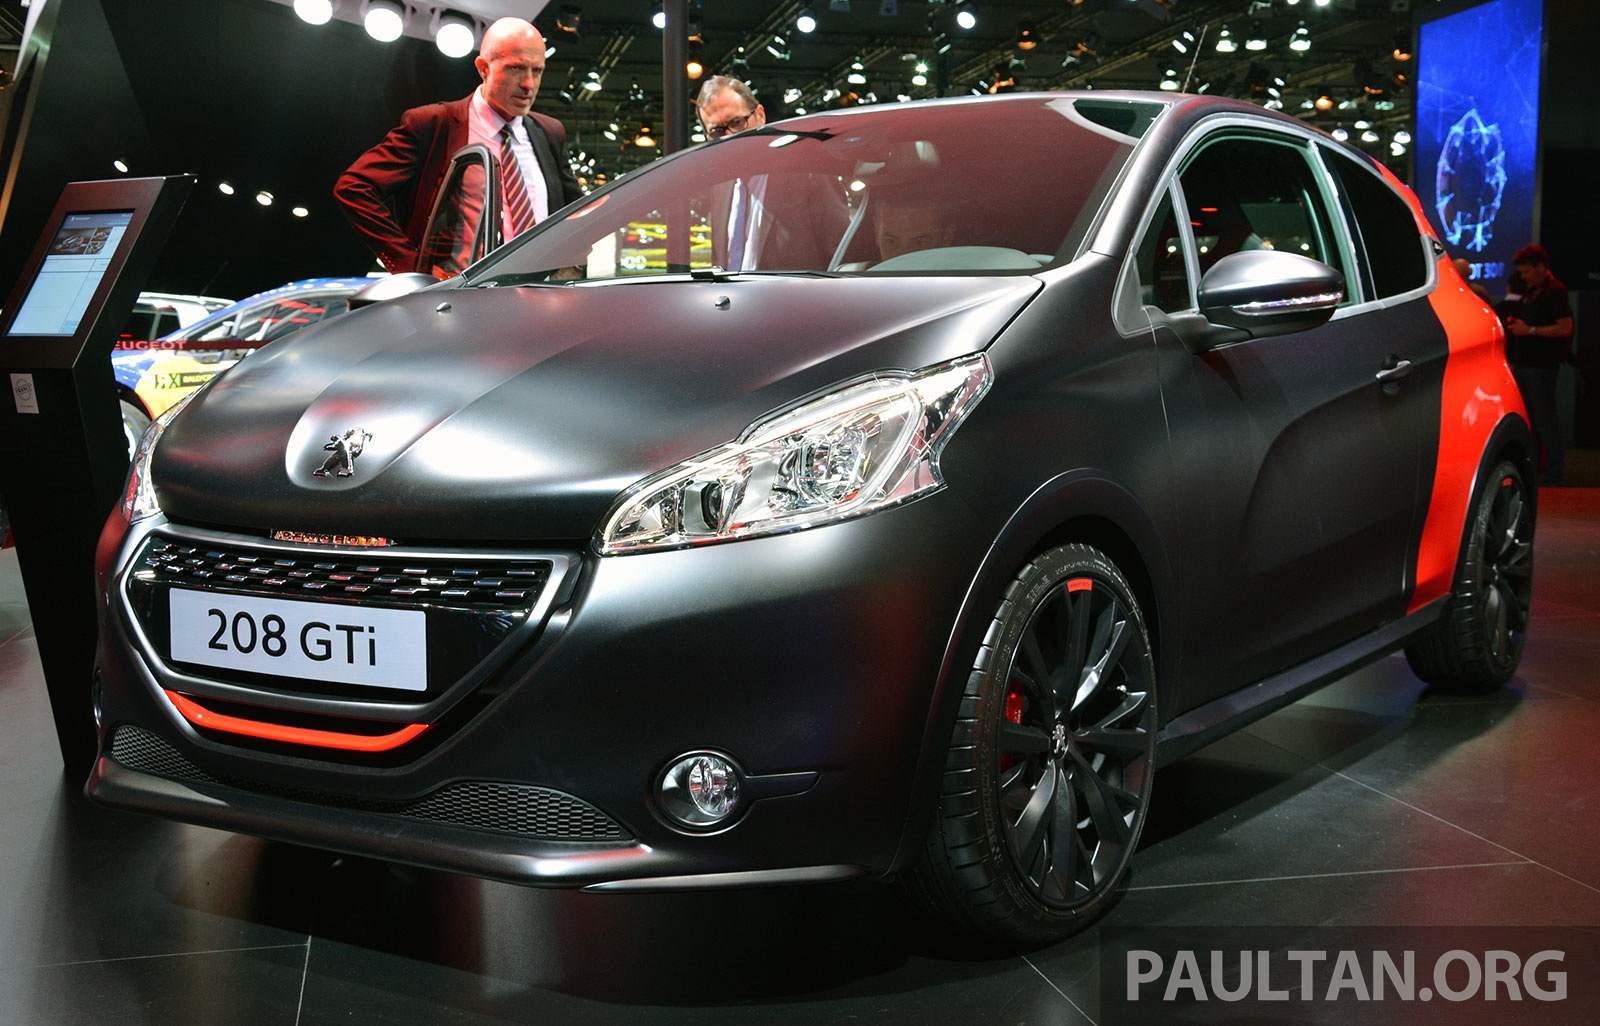 paris 2014 peugeot 208 gti 30th anniversary edition image. Black Bedroom Furniture Sets. Home Design Ideas